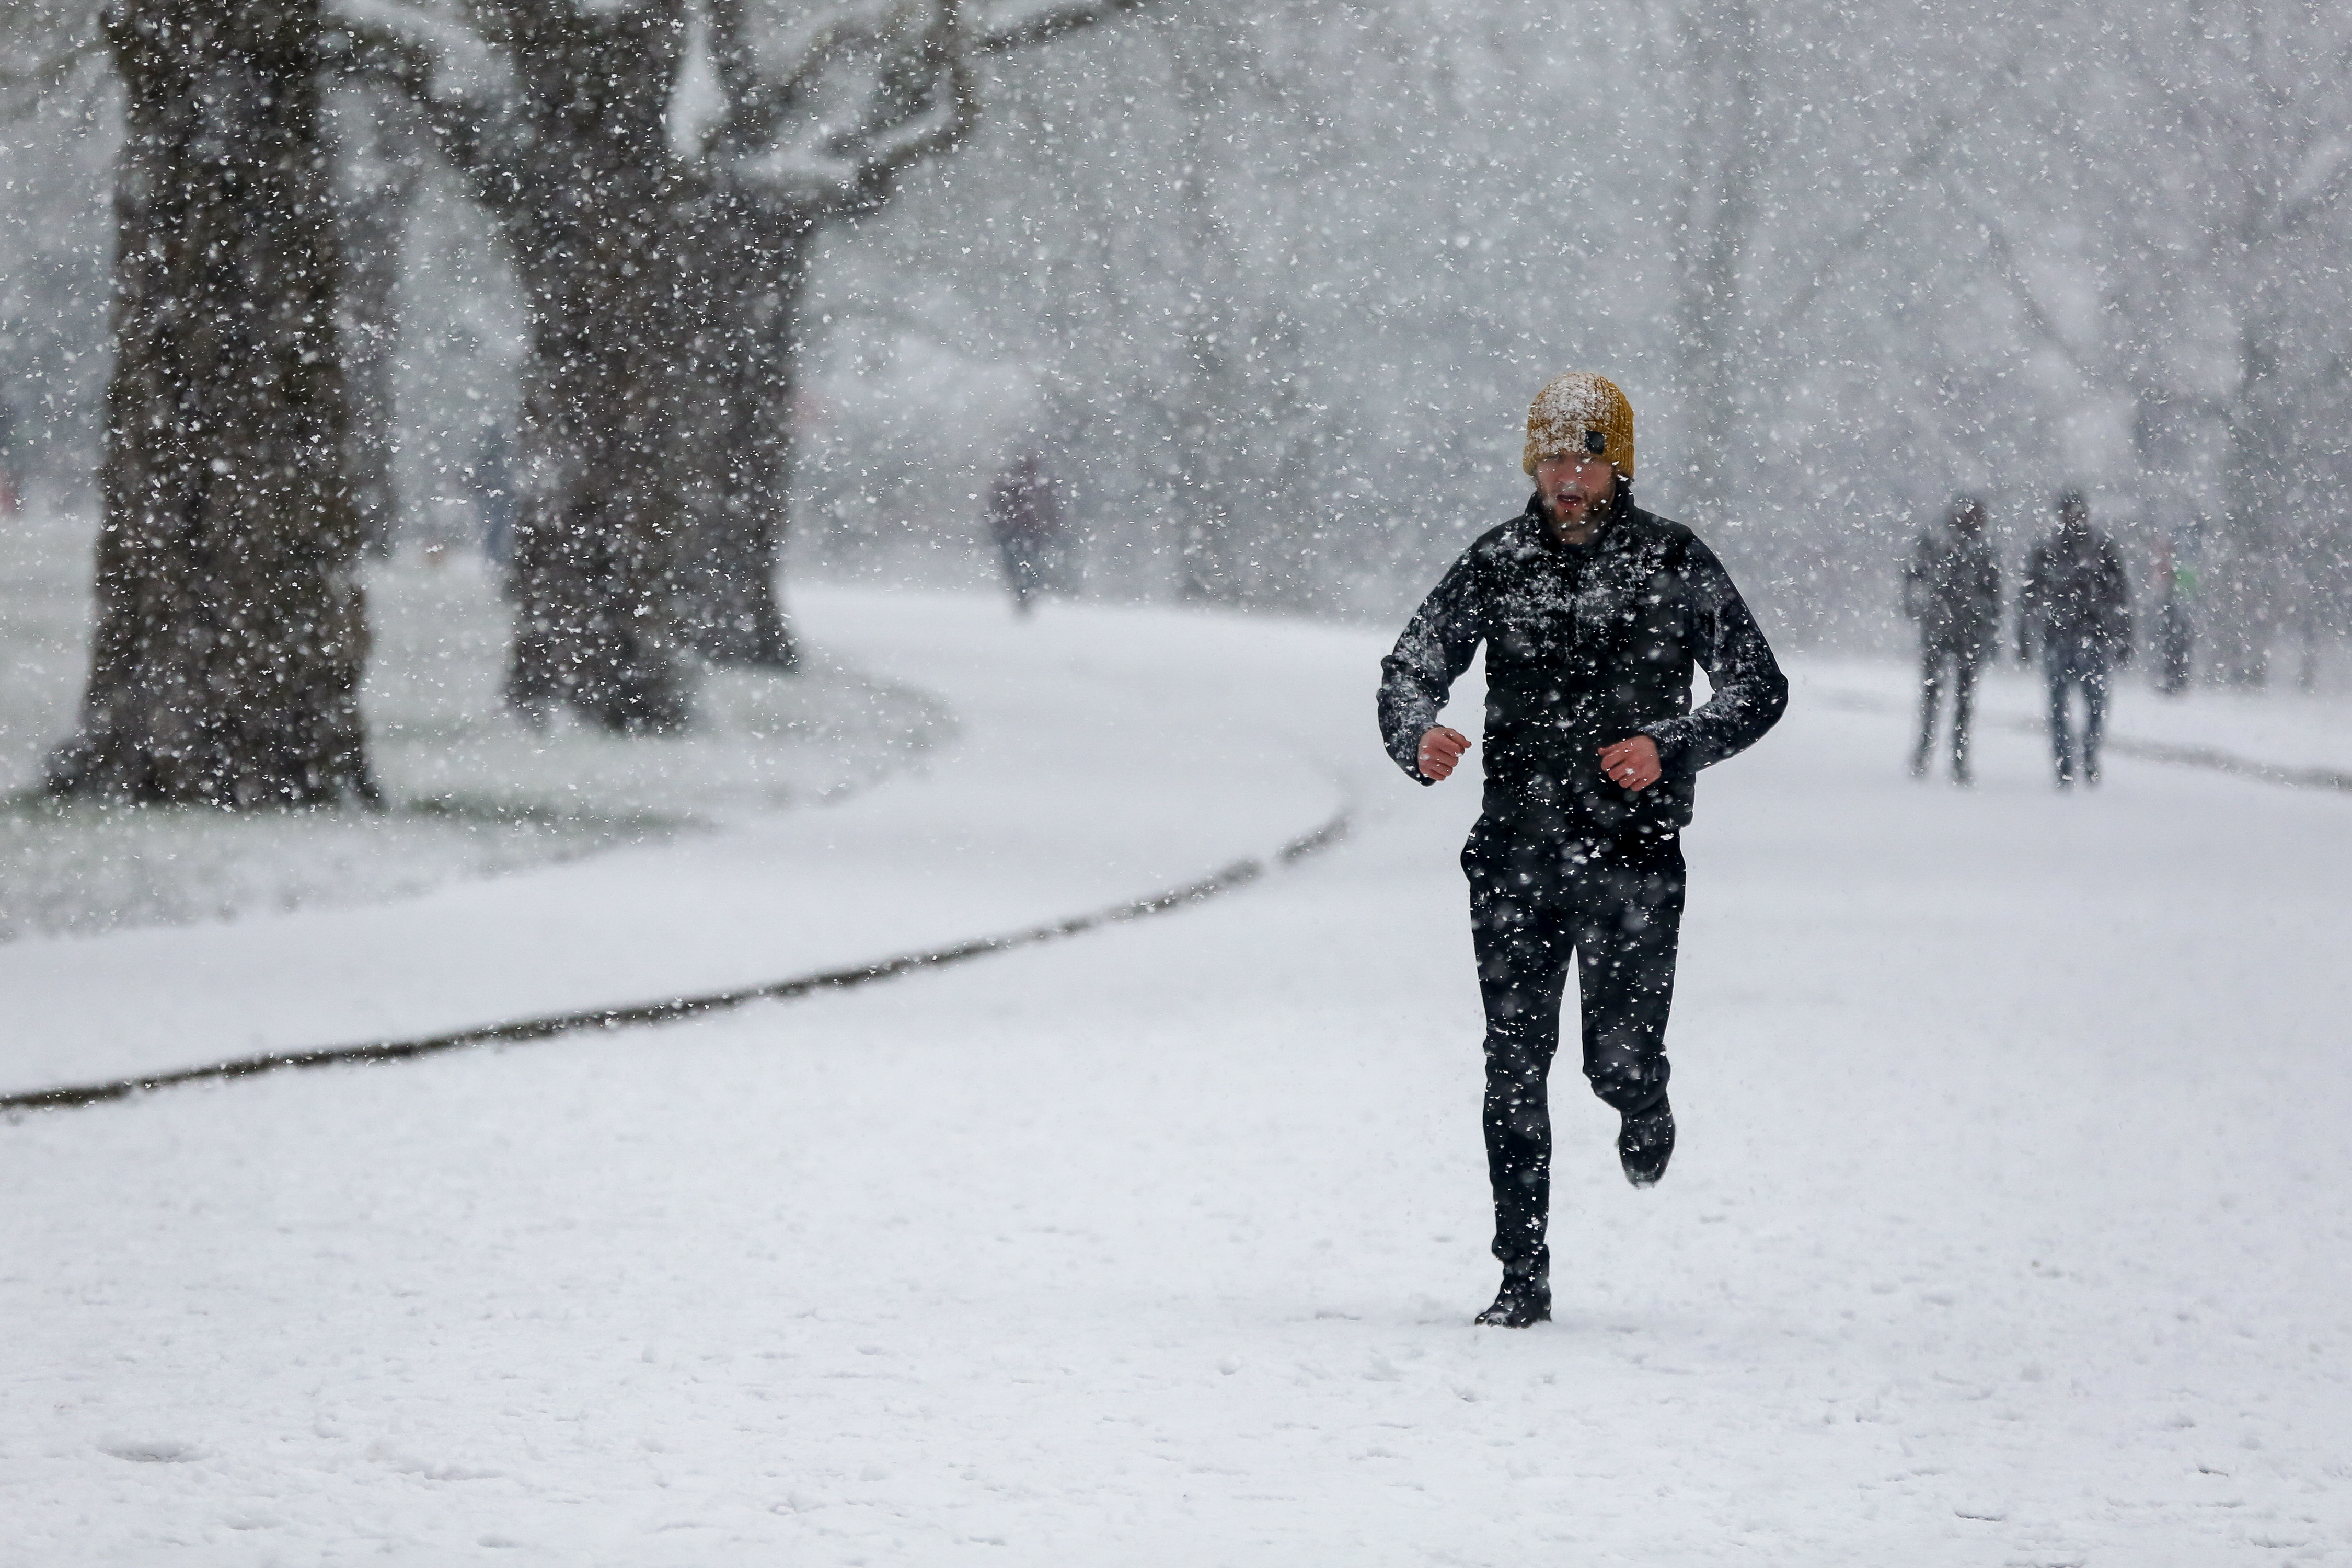 A jogger braves the snow in Finsbury Park, north London as large parts of the UK are expected to be blanketed in snow and freezing conditions. According to the Met Office, the cold weather could bring up to 10cm of snow to some parts of the country and an amber weather warning for snow and ice is in place across much of the UK. (Photo by Dinendra Haria / SOPA Images/Sipa USA)